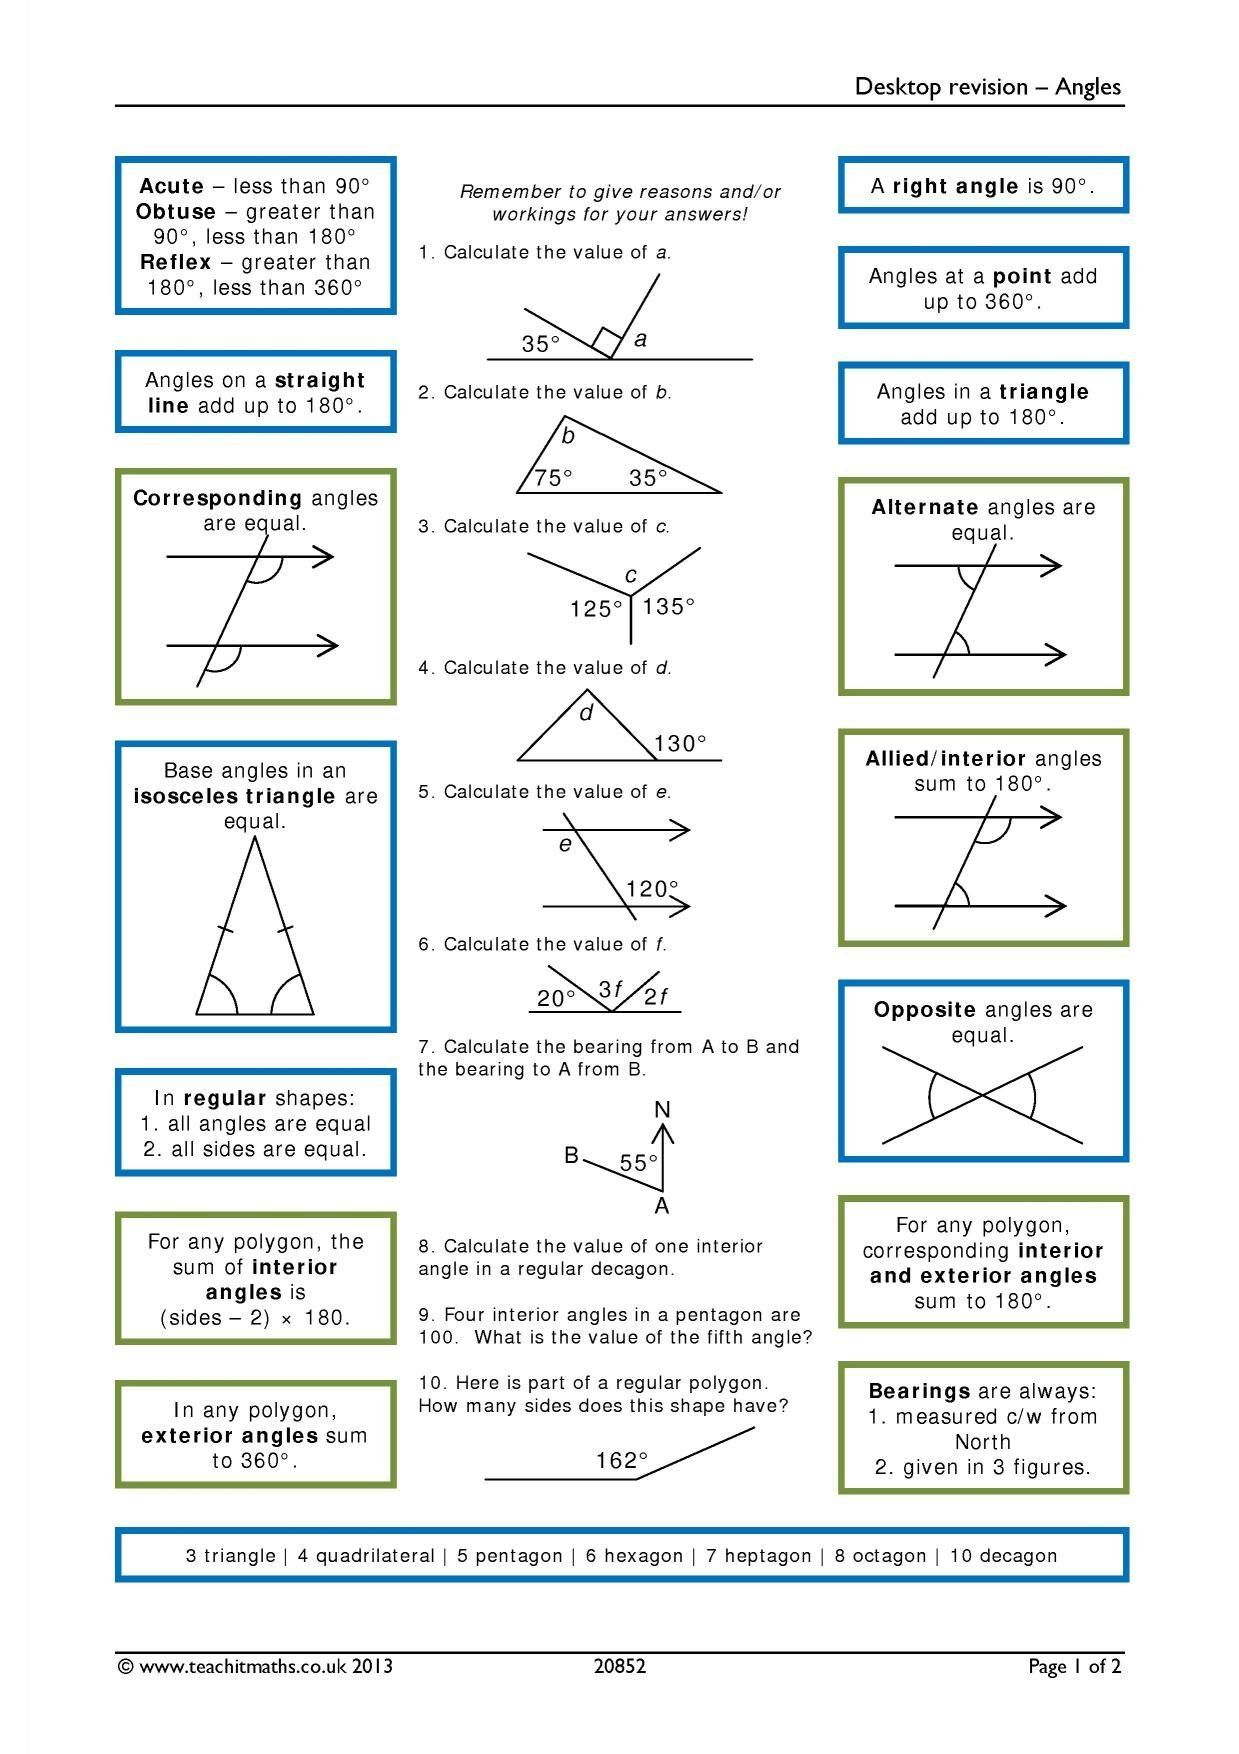 Angles In Polygons Worksheet Answers   Gcse math [ 1754 x 1239 Pixel ]